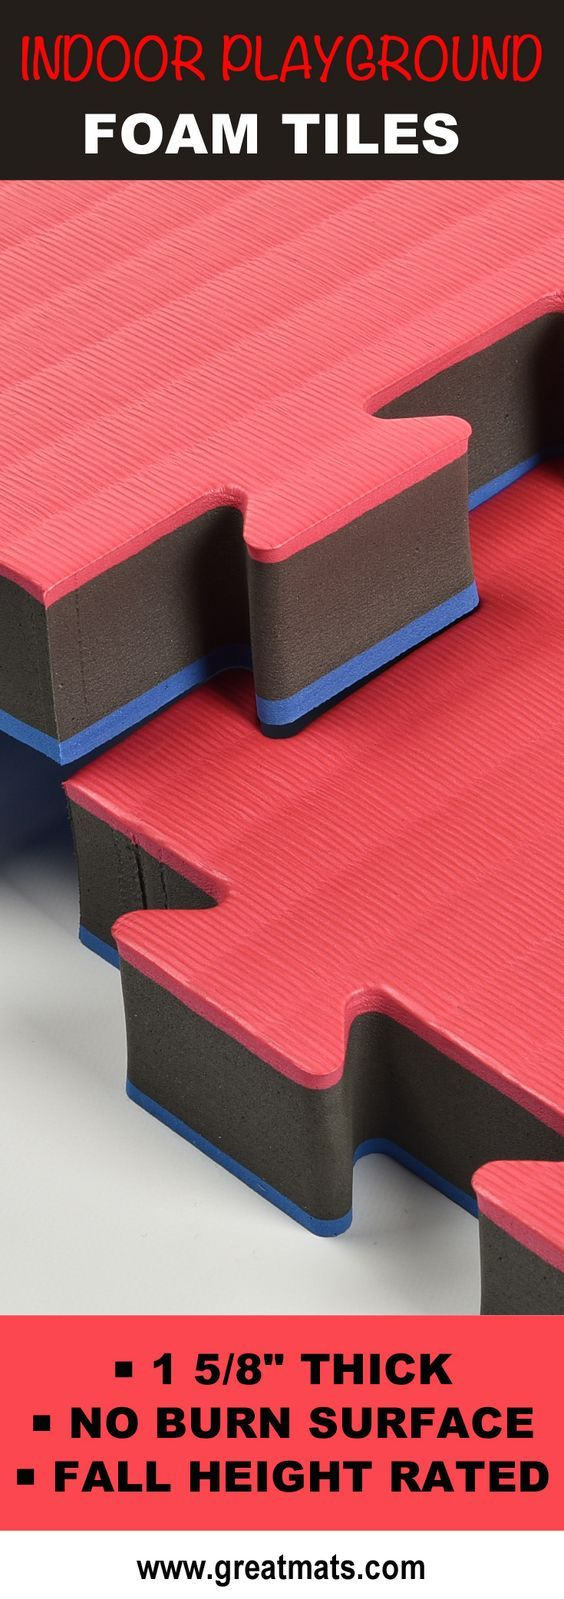 Greatmats Indoor Playground Foam Tiles Provide Fall Protection As Wells As  A Comfortable Play Surface That